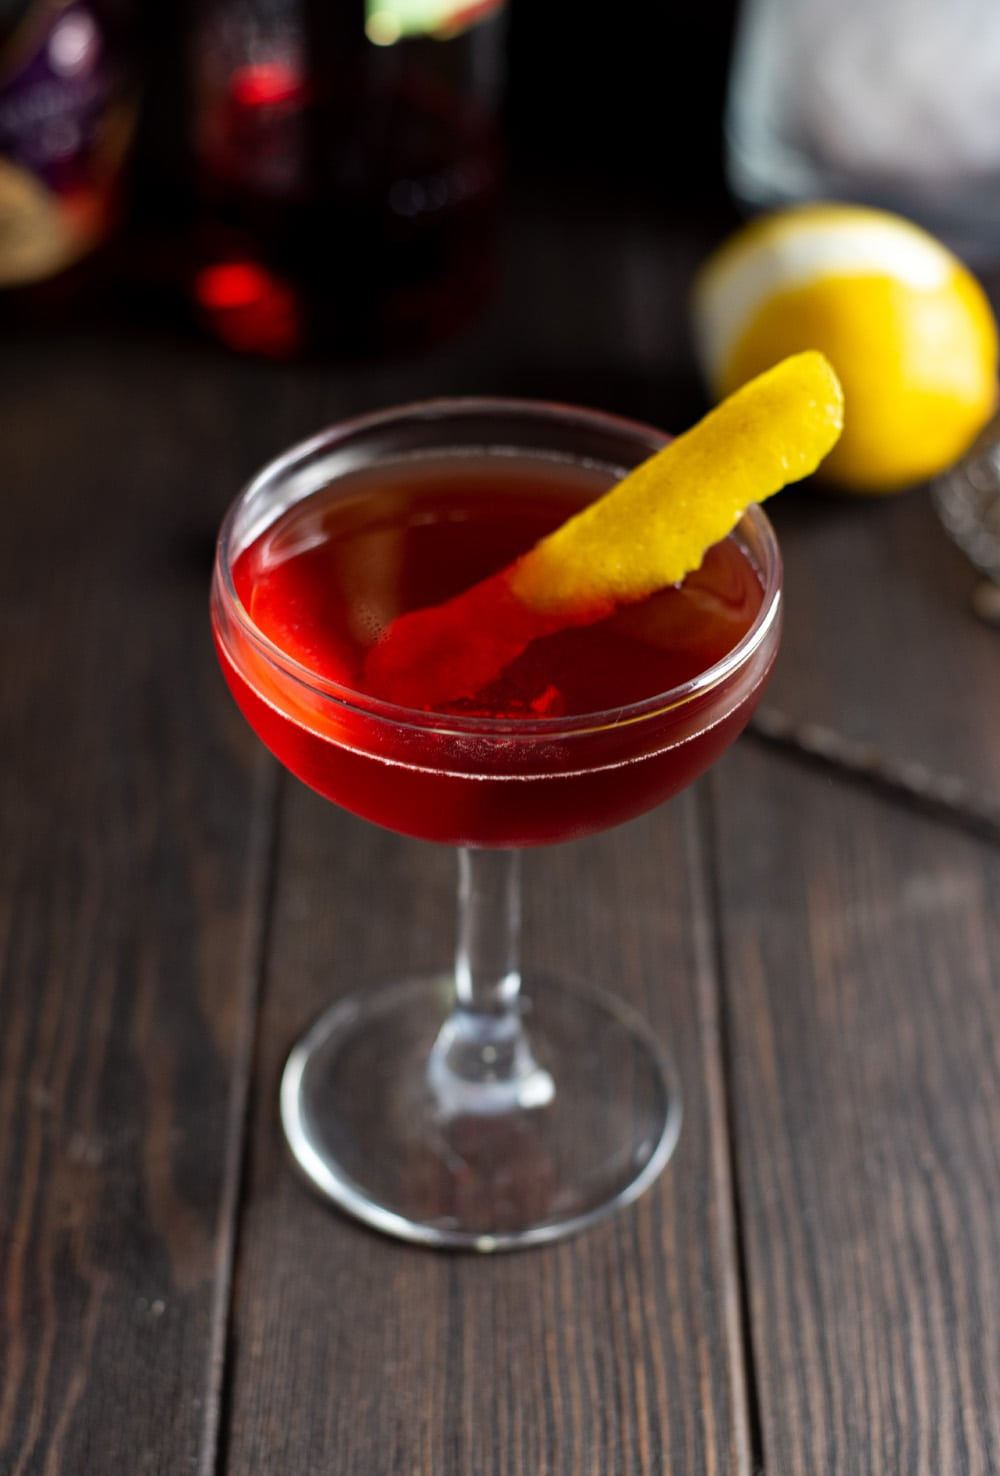 Classic Boulevardier Cocktail with a Twist